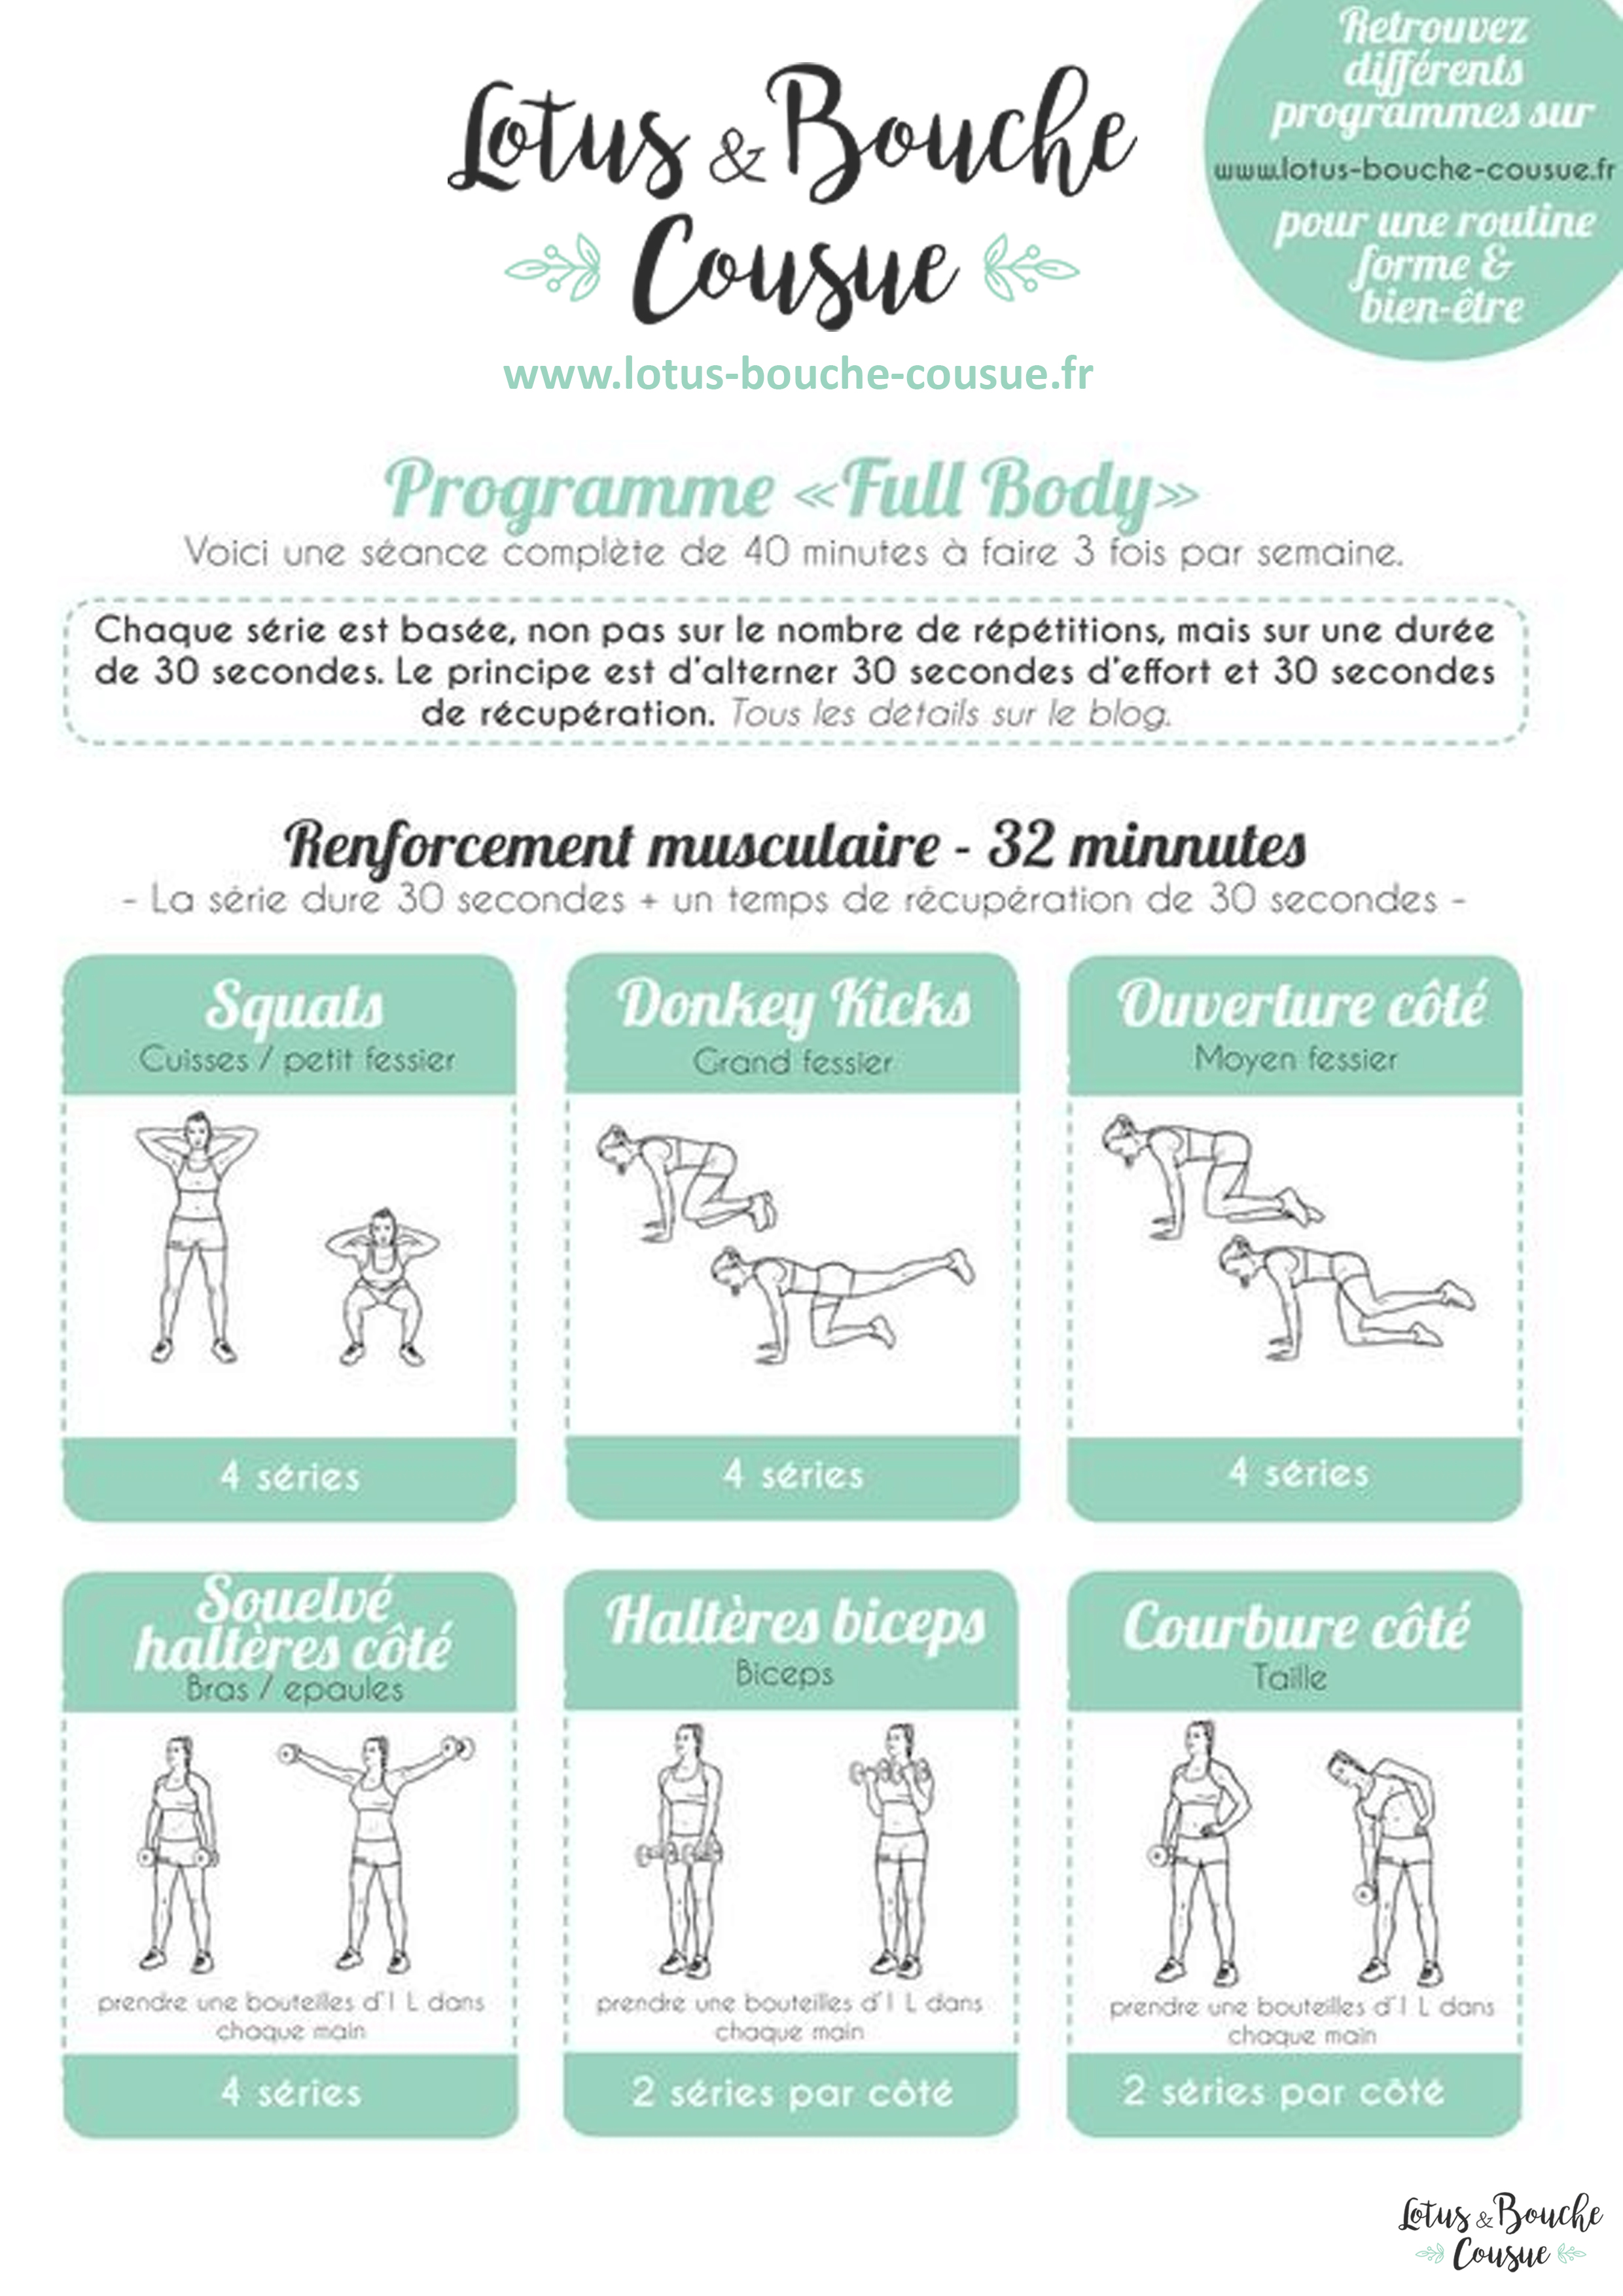 Programme fitness full body la maison lotus bouche for Programme entrainement sportif